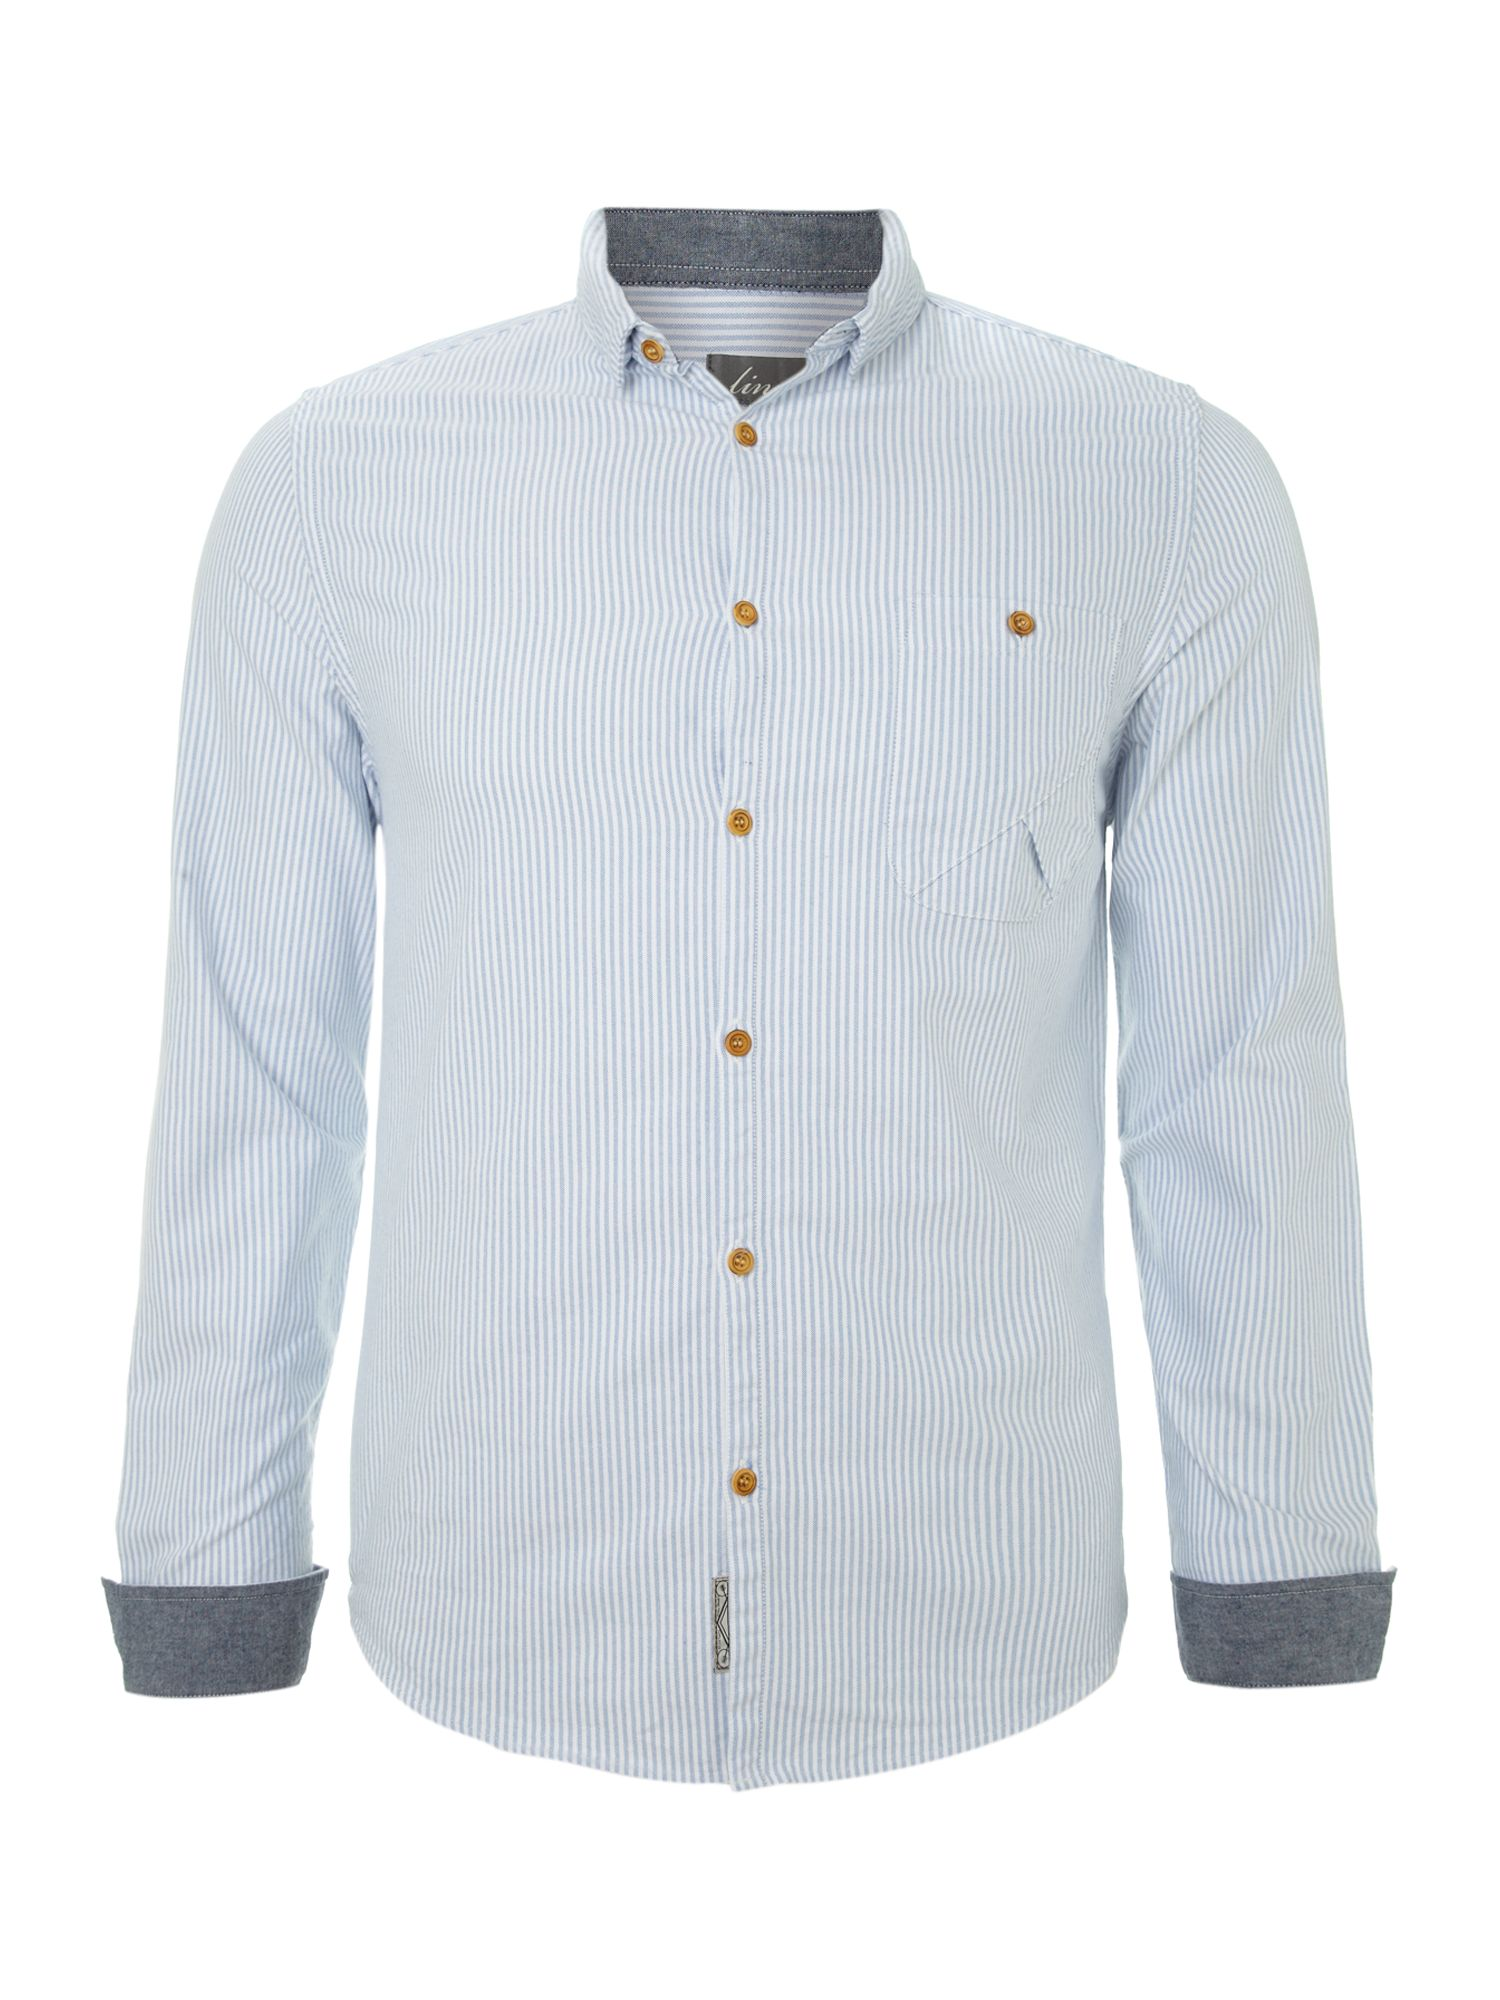 ticking stripe long sleeve shirt